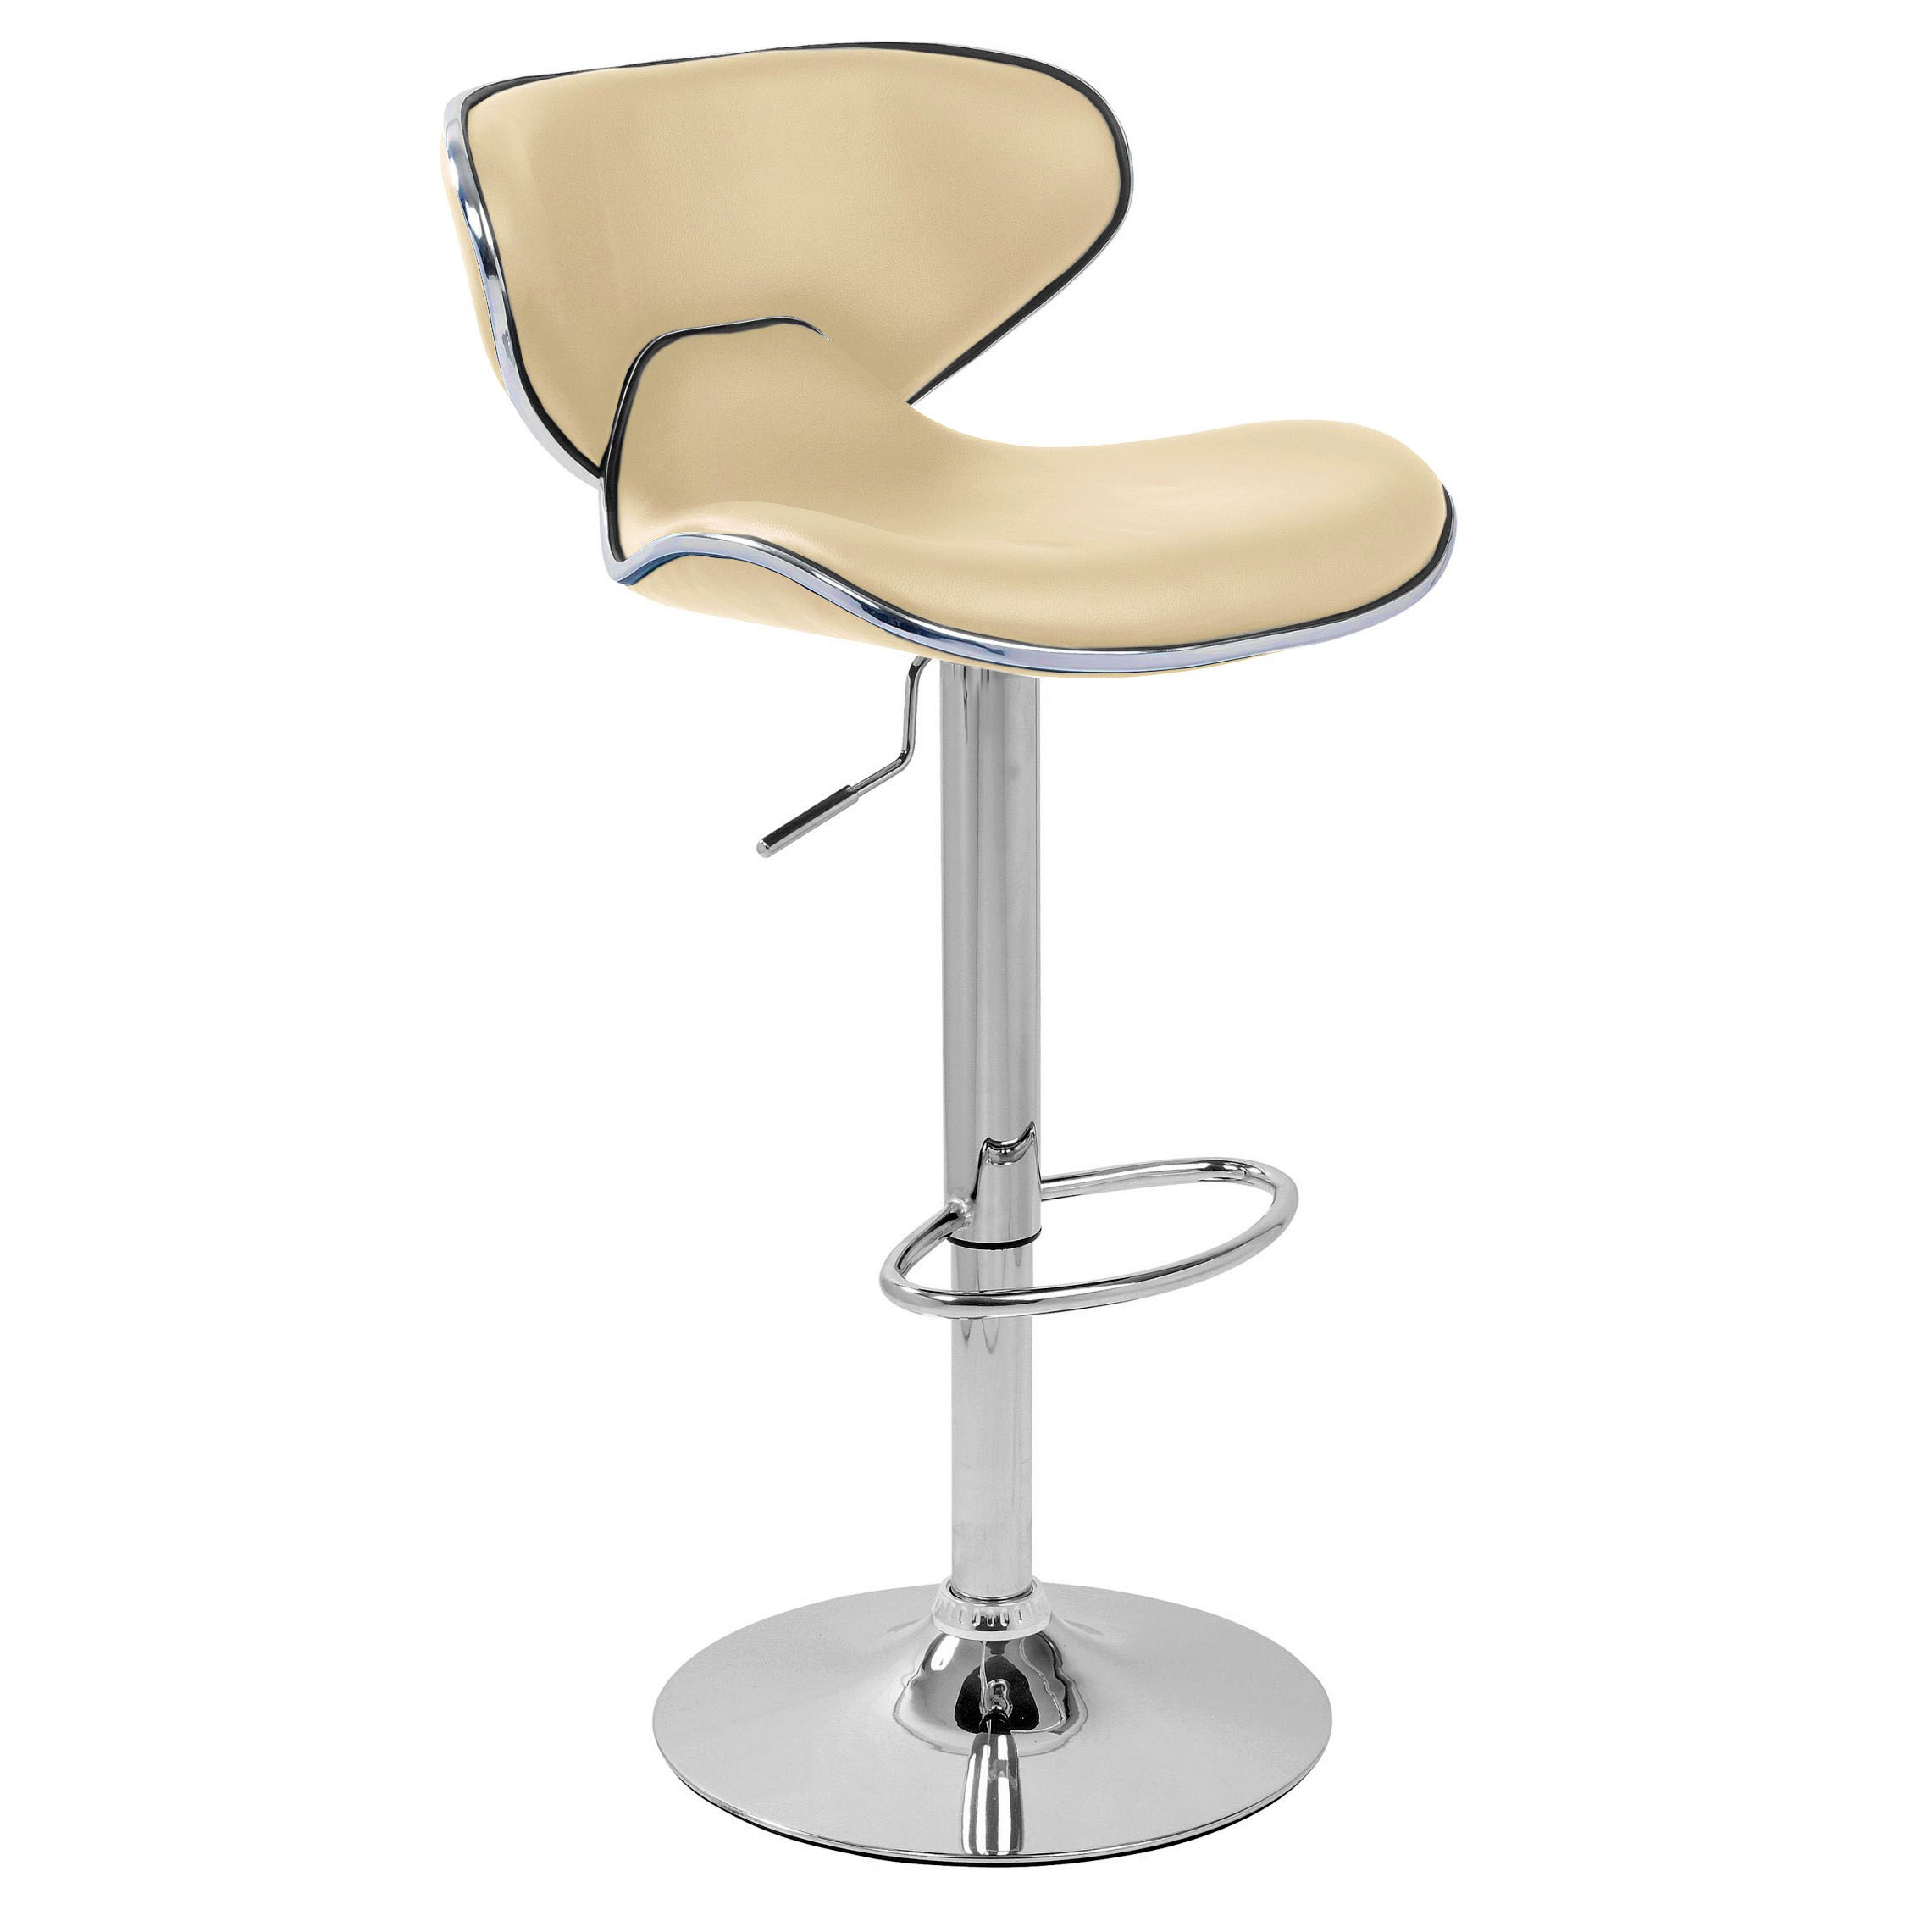 Carcaso Bar Stool - Cream